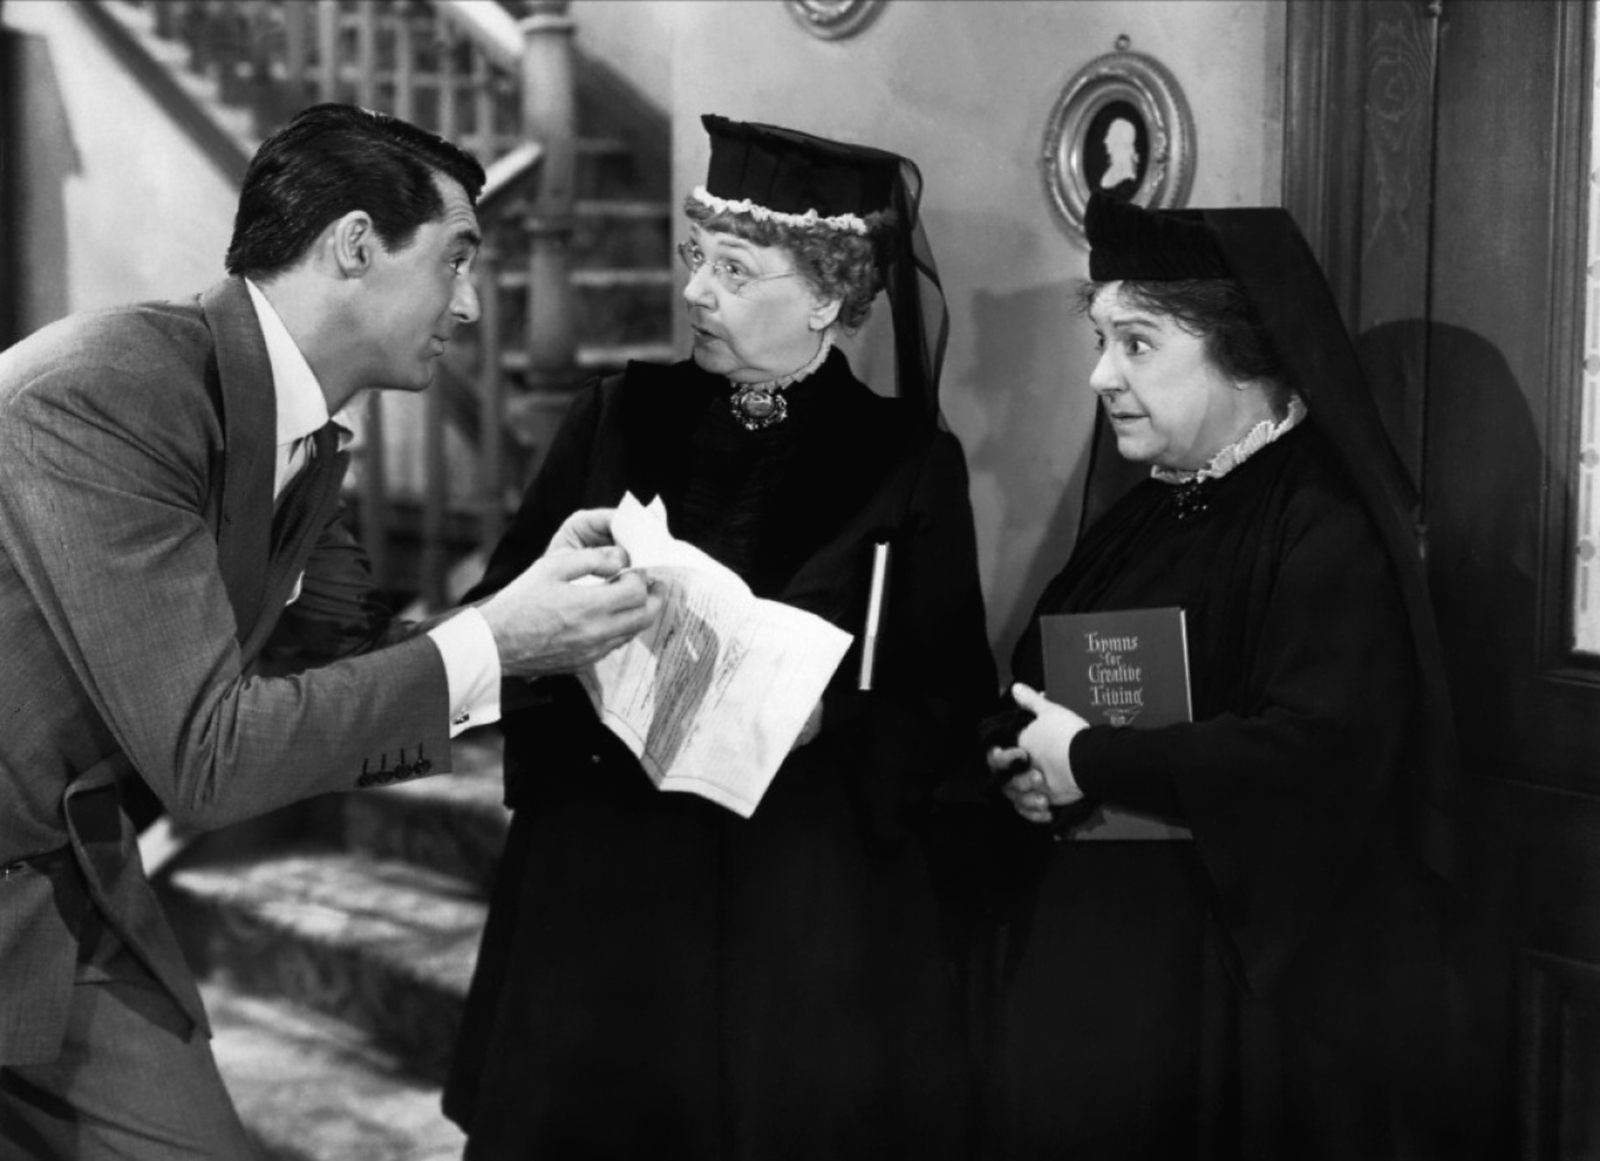 an analysis of the movie arsenic and old lace directed by frank capra Find the best selection of cheap lace closure and free part lace closure here closure lace and lace closures for sale at t1hair\n\nfor more info: https:.